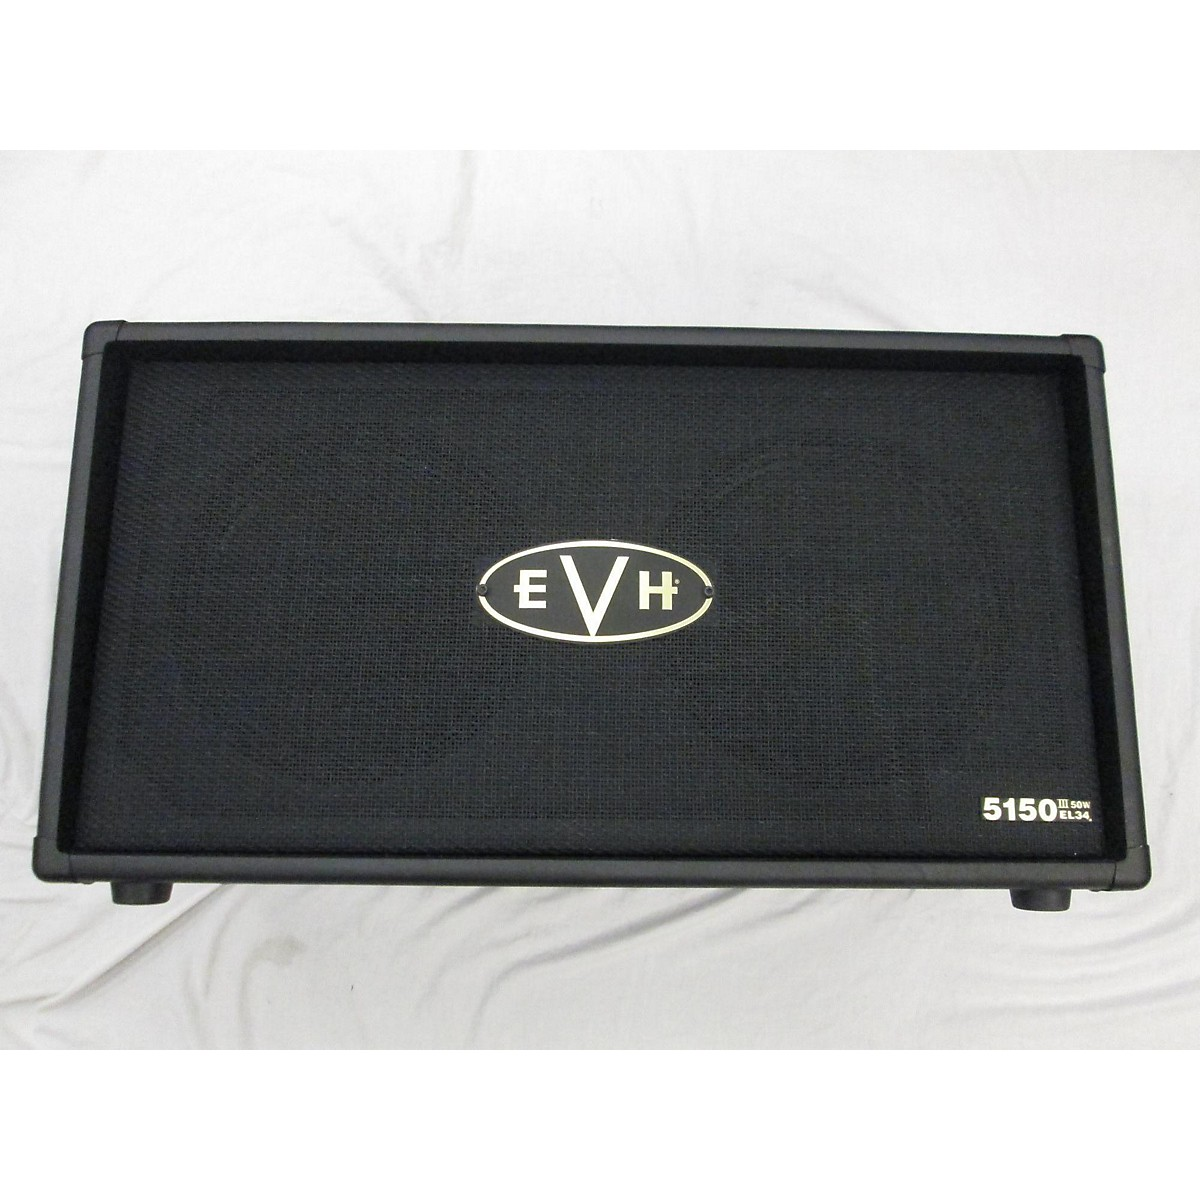 EVH 5150 III 50W EL34 Tube Guitar Amp Head